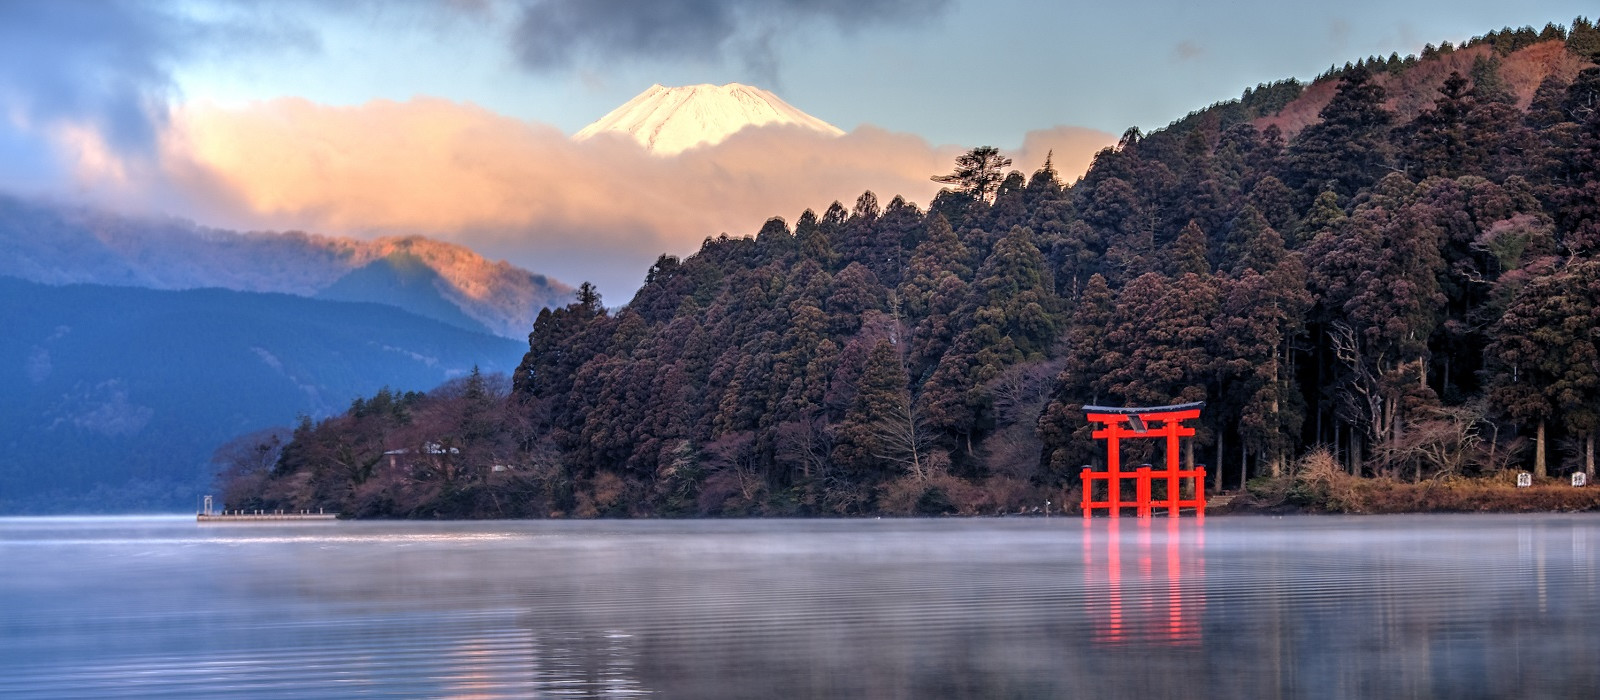 Luxury Japan and Mount Fuji Tour Trip 1